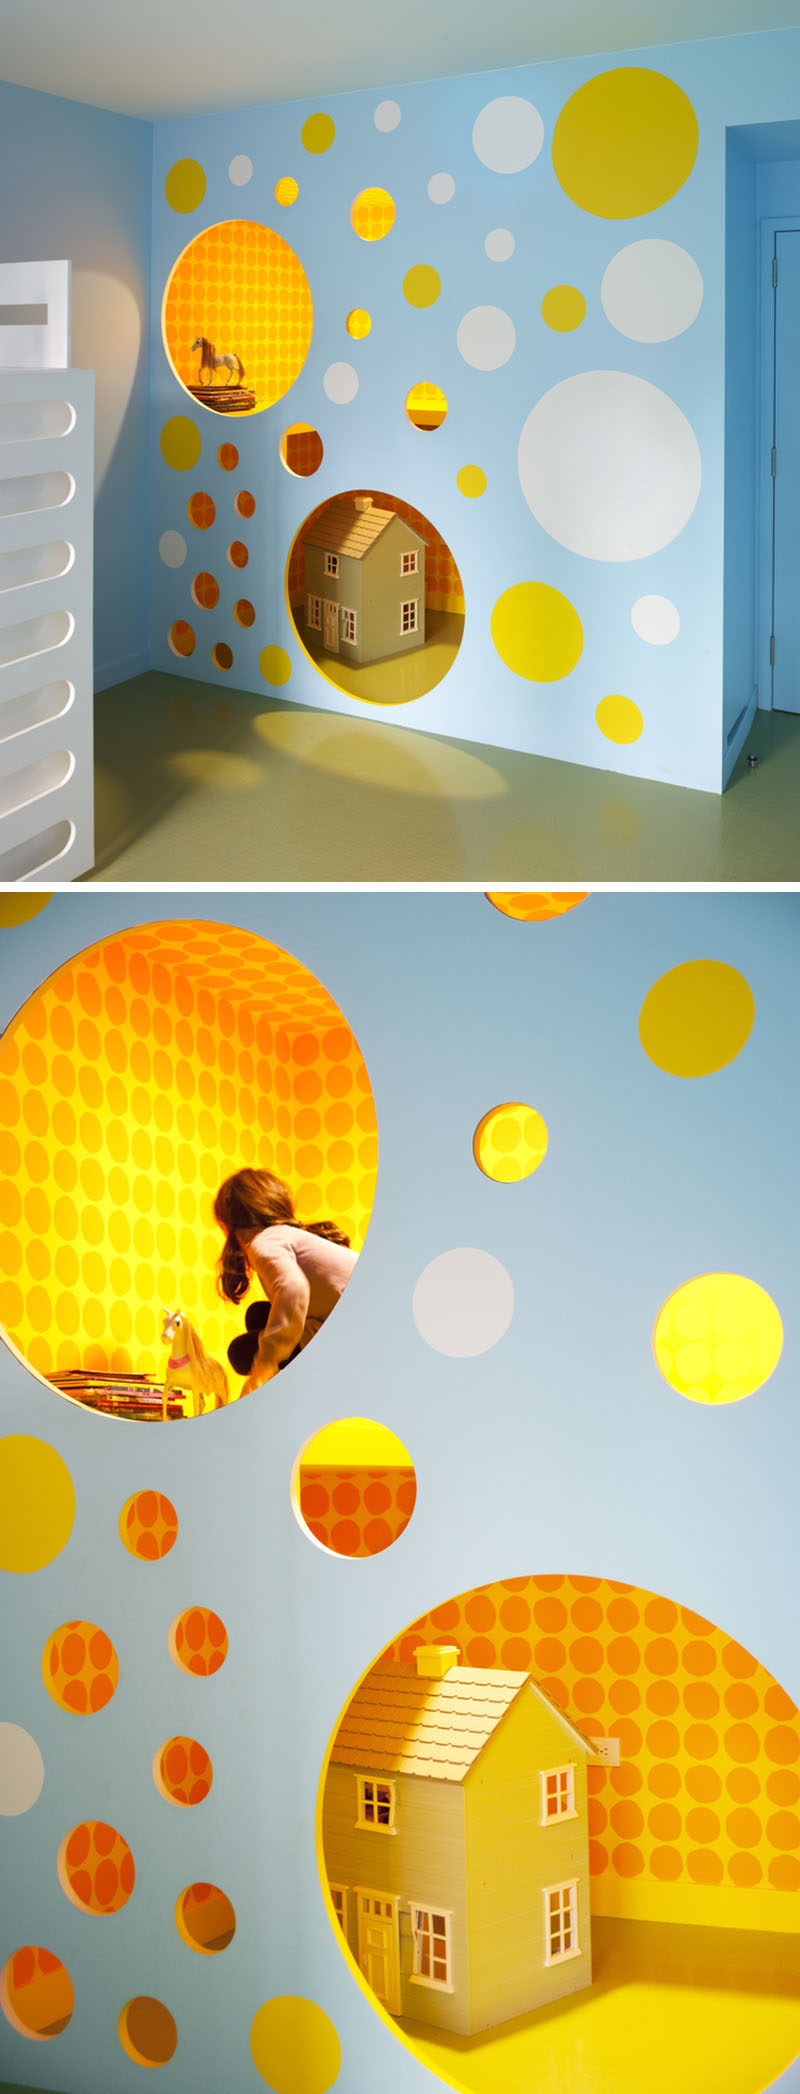 11 Kids Only Hideouts That Even The Biggest Grownups Would Be Jealous Of // A renovated closet became colorful wall full of cut out circles, making room for a great place to hideout. Apart from being a fun design element, the circles also act as climbing holes to the lofted space.